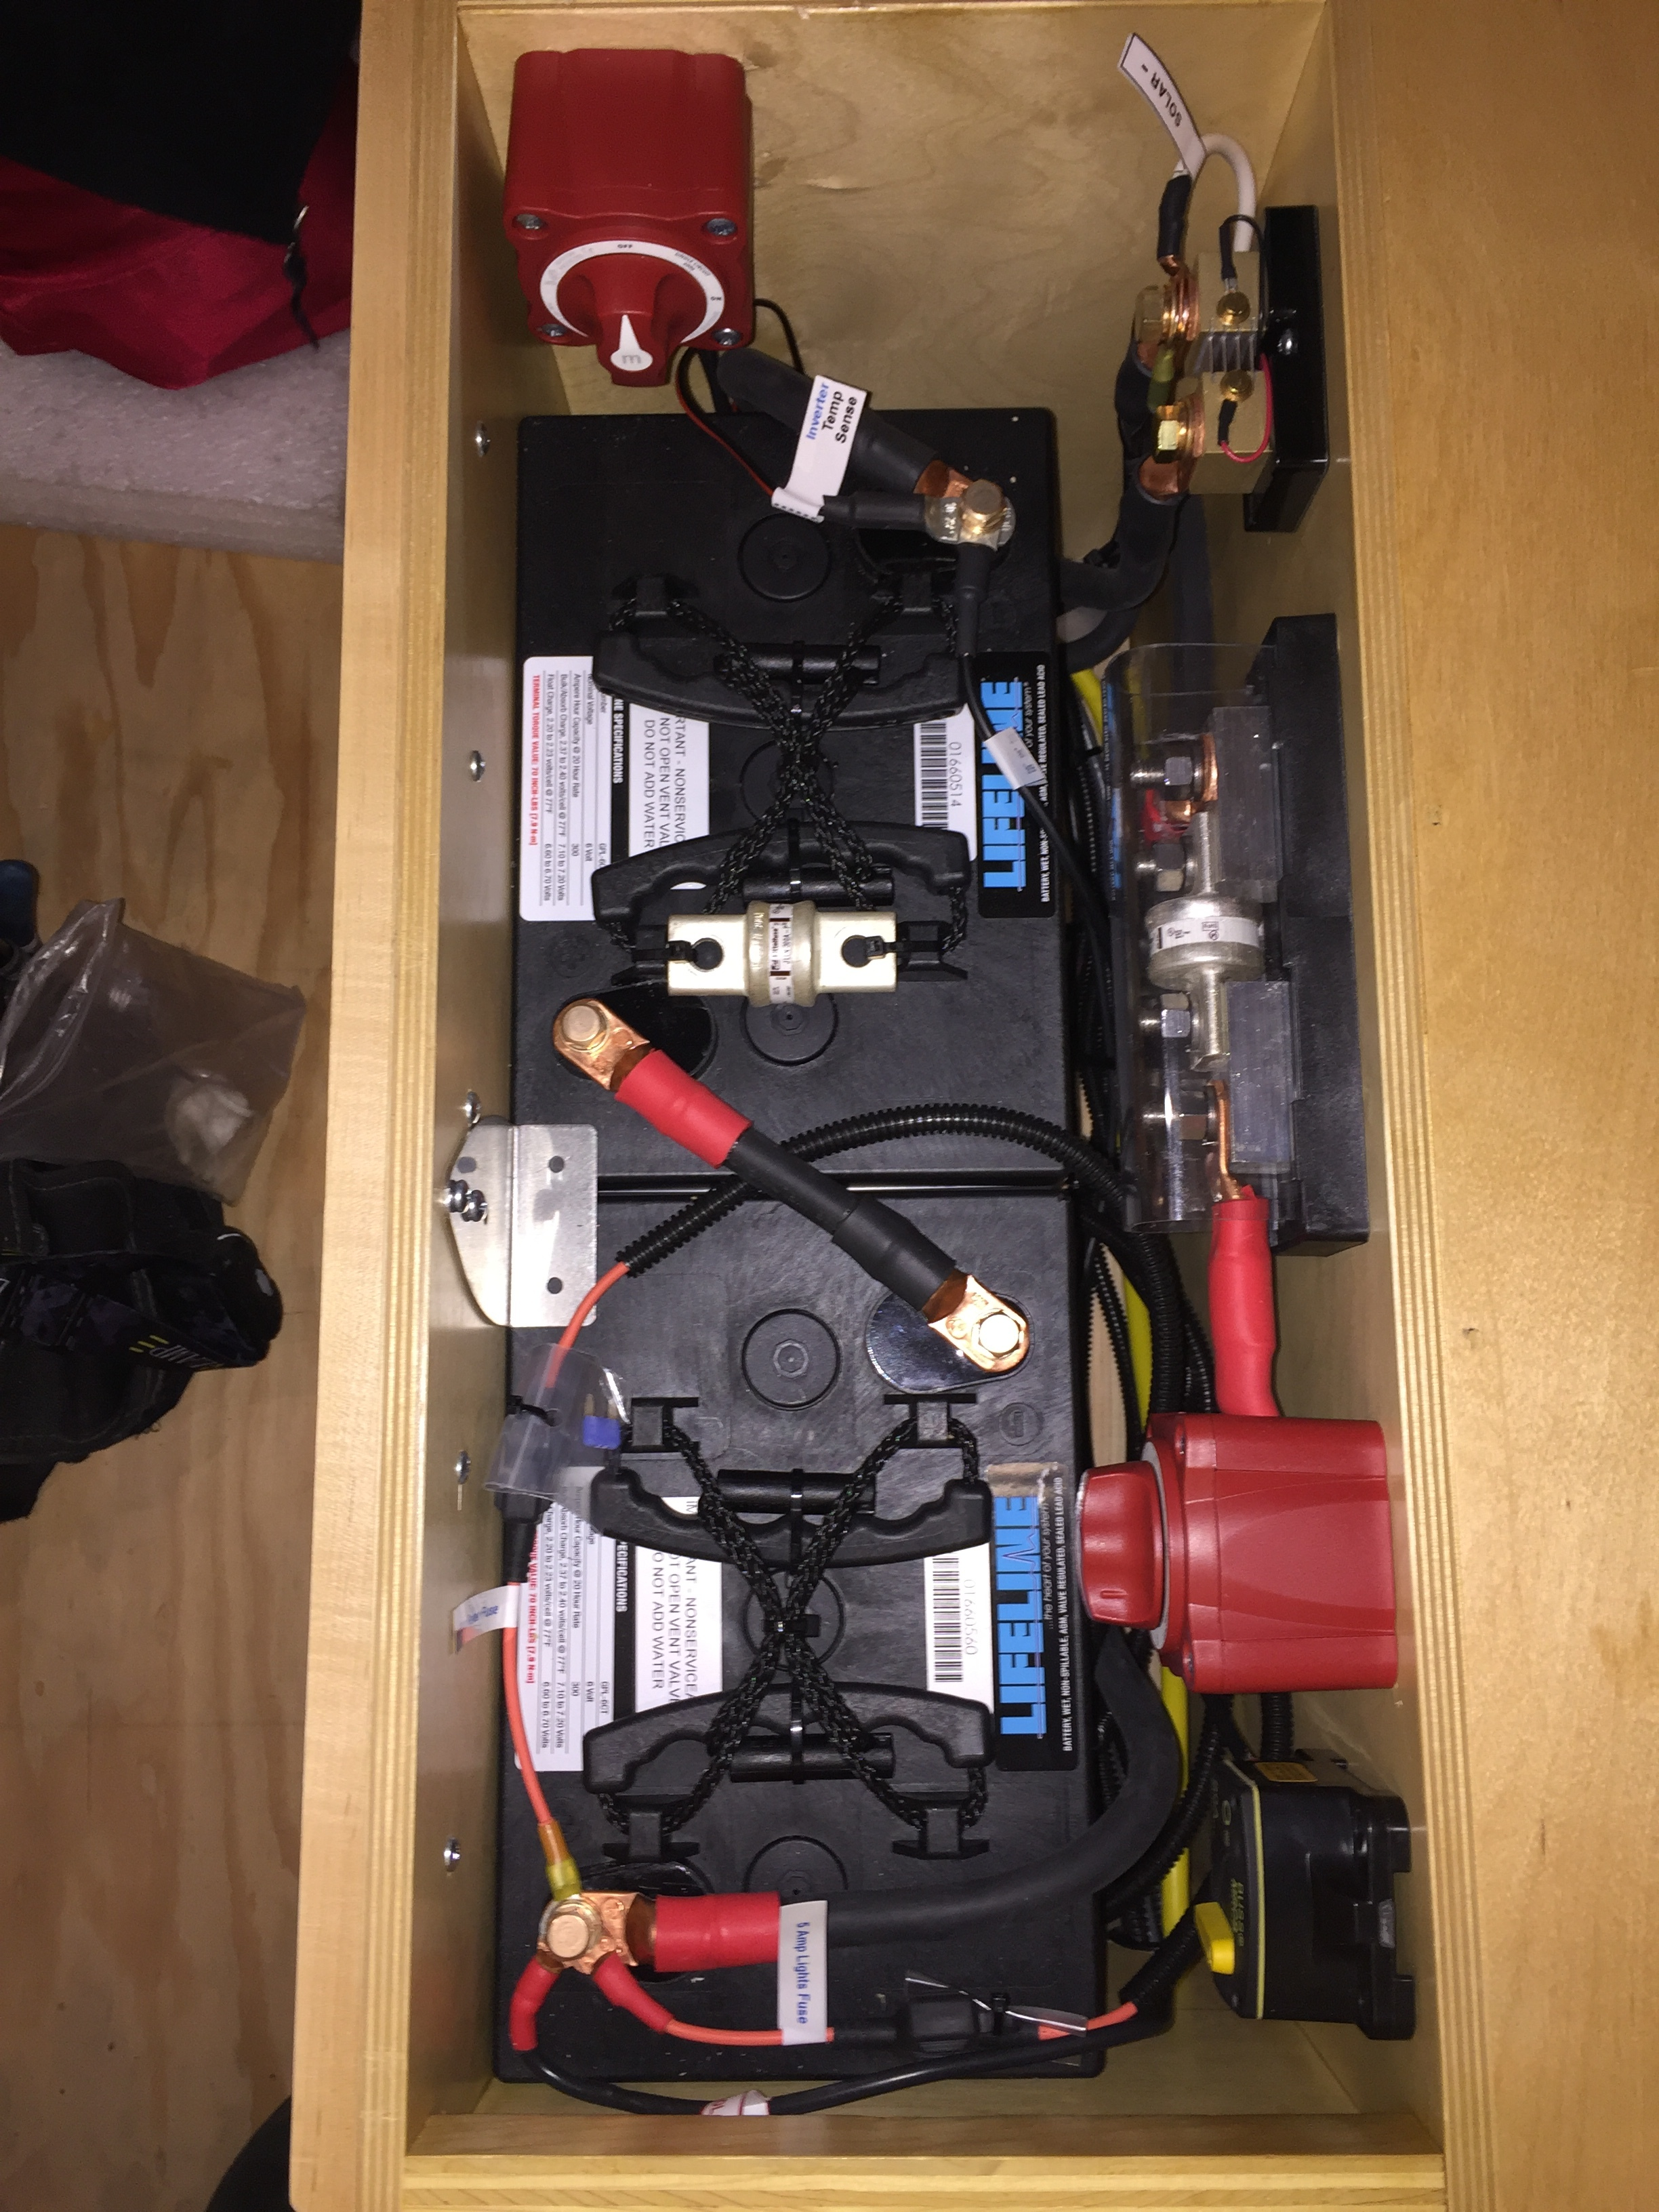 AGM Battery Bank